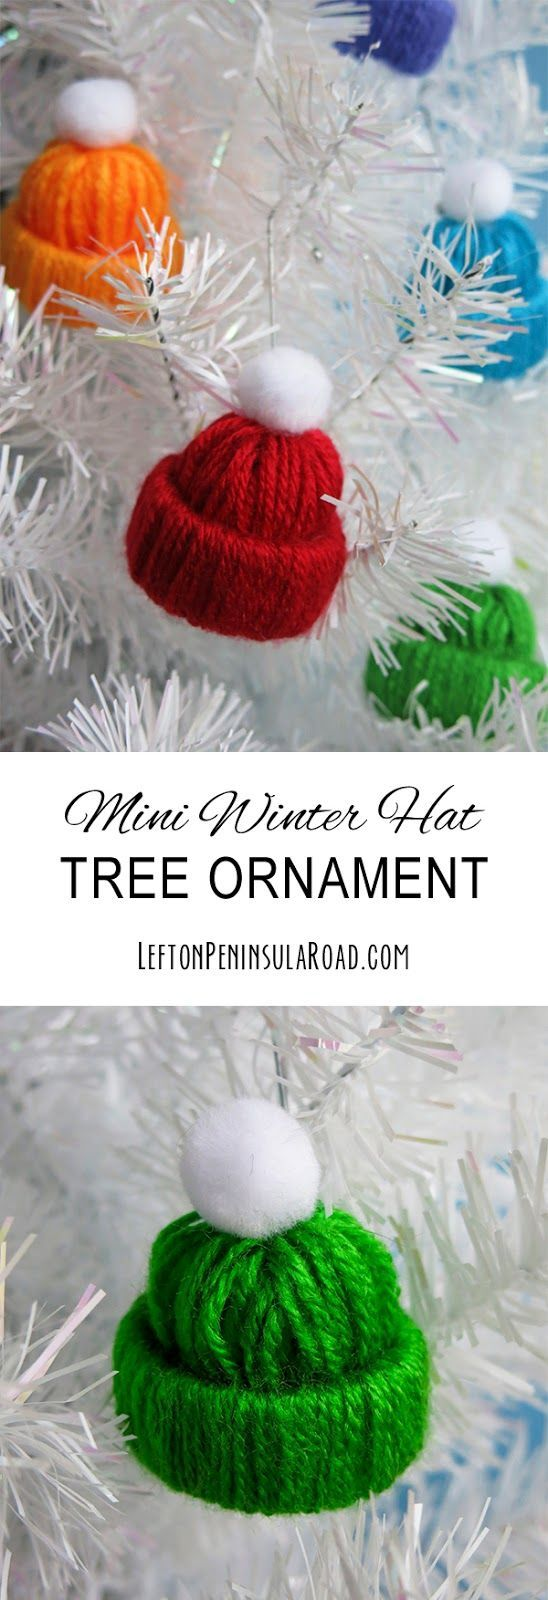 Loom Knit Christmas Ornaments Part - 44: Best 25+ Knitted Christmas Decorations Ideas On Pinterest | Knit Christmas  Ornaments, Christmas Knitting And Free Christmas Knitting Patterns